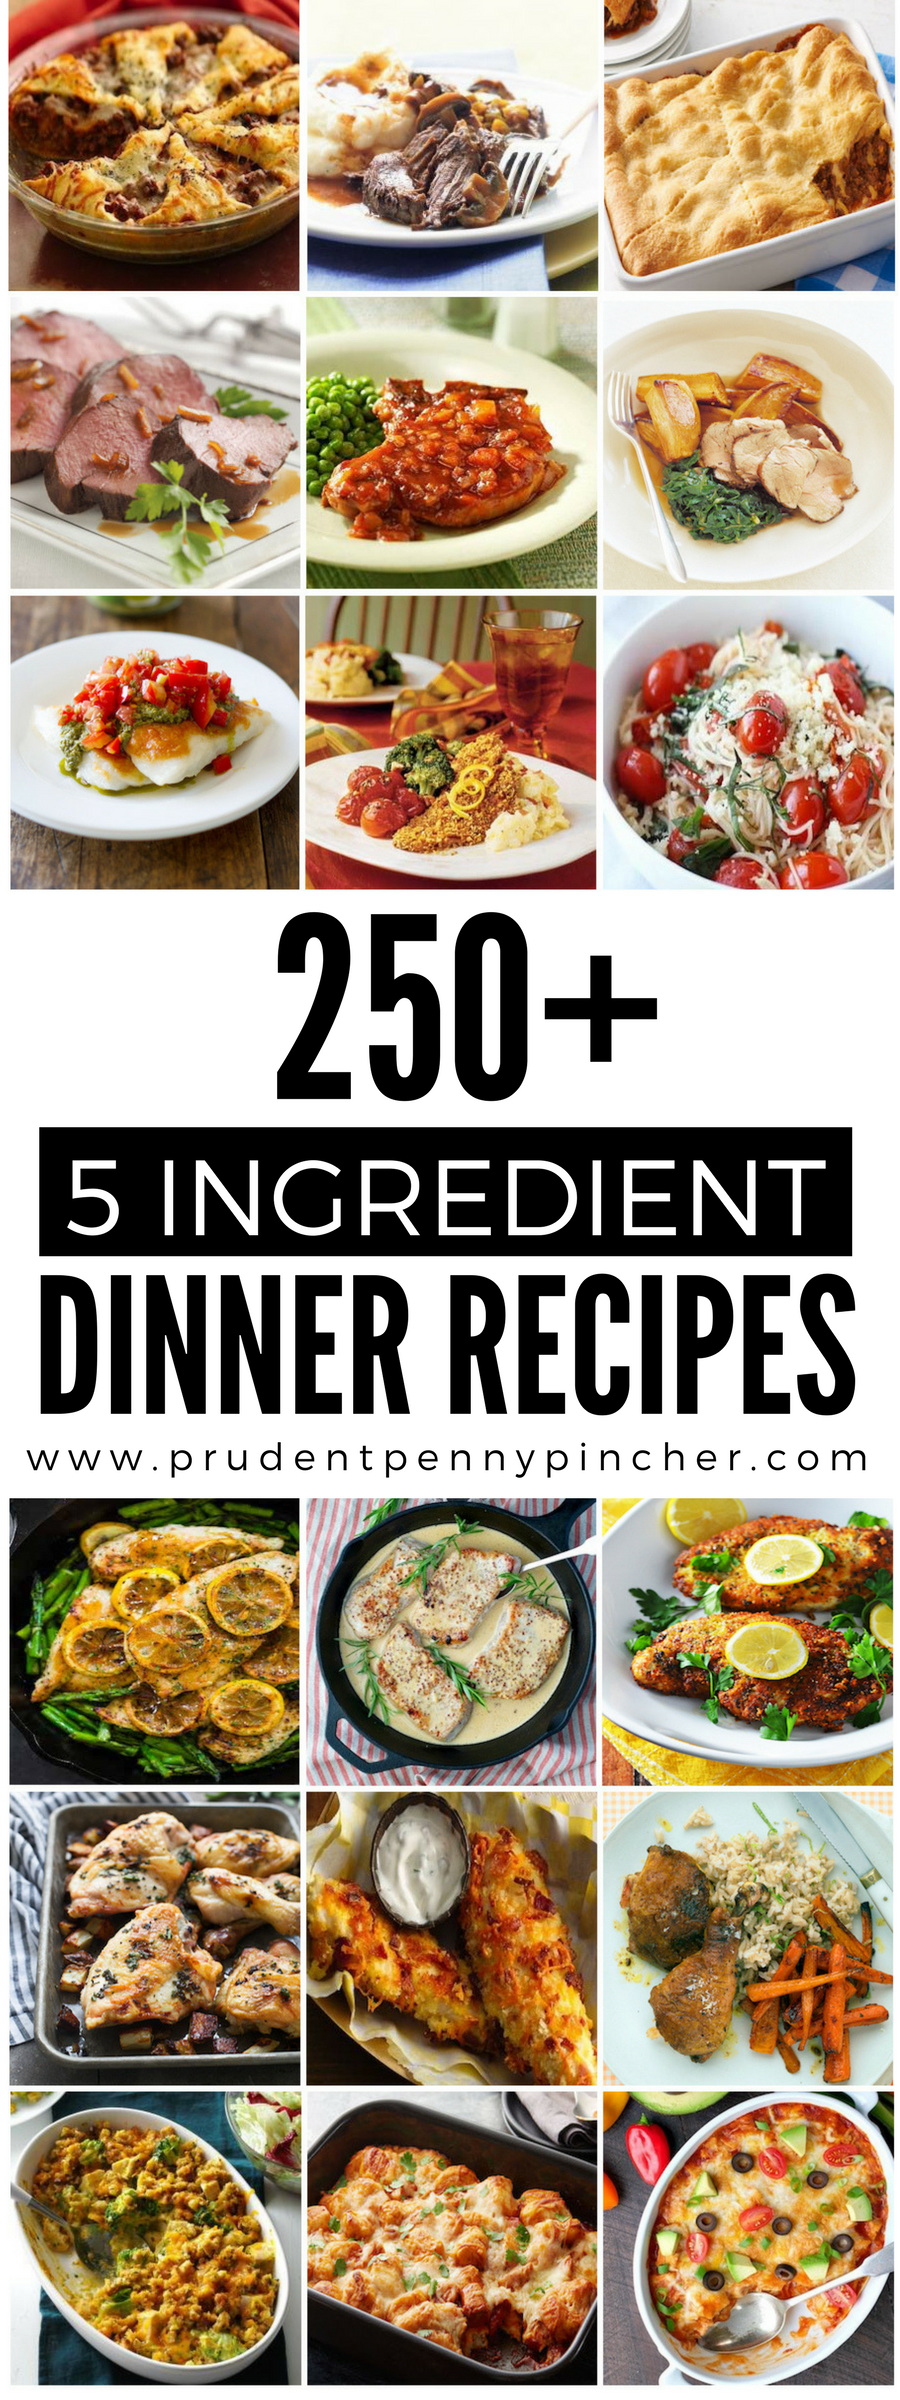 5-ingredient dinner recipes